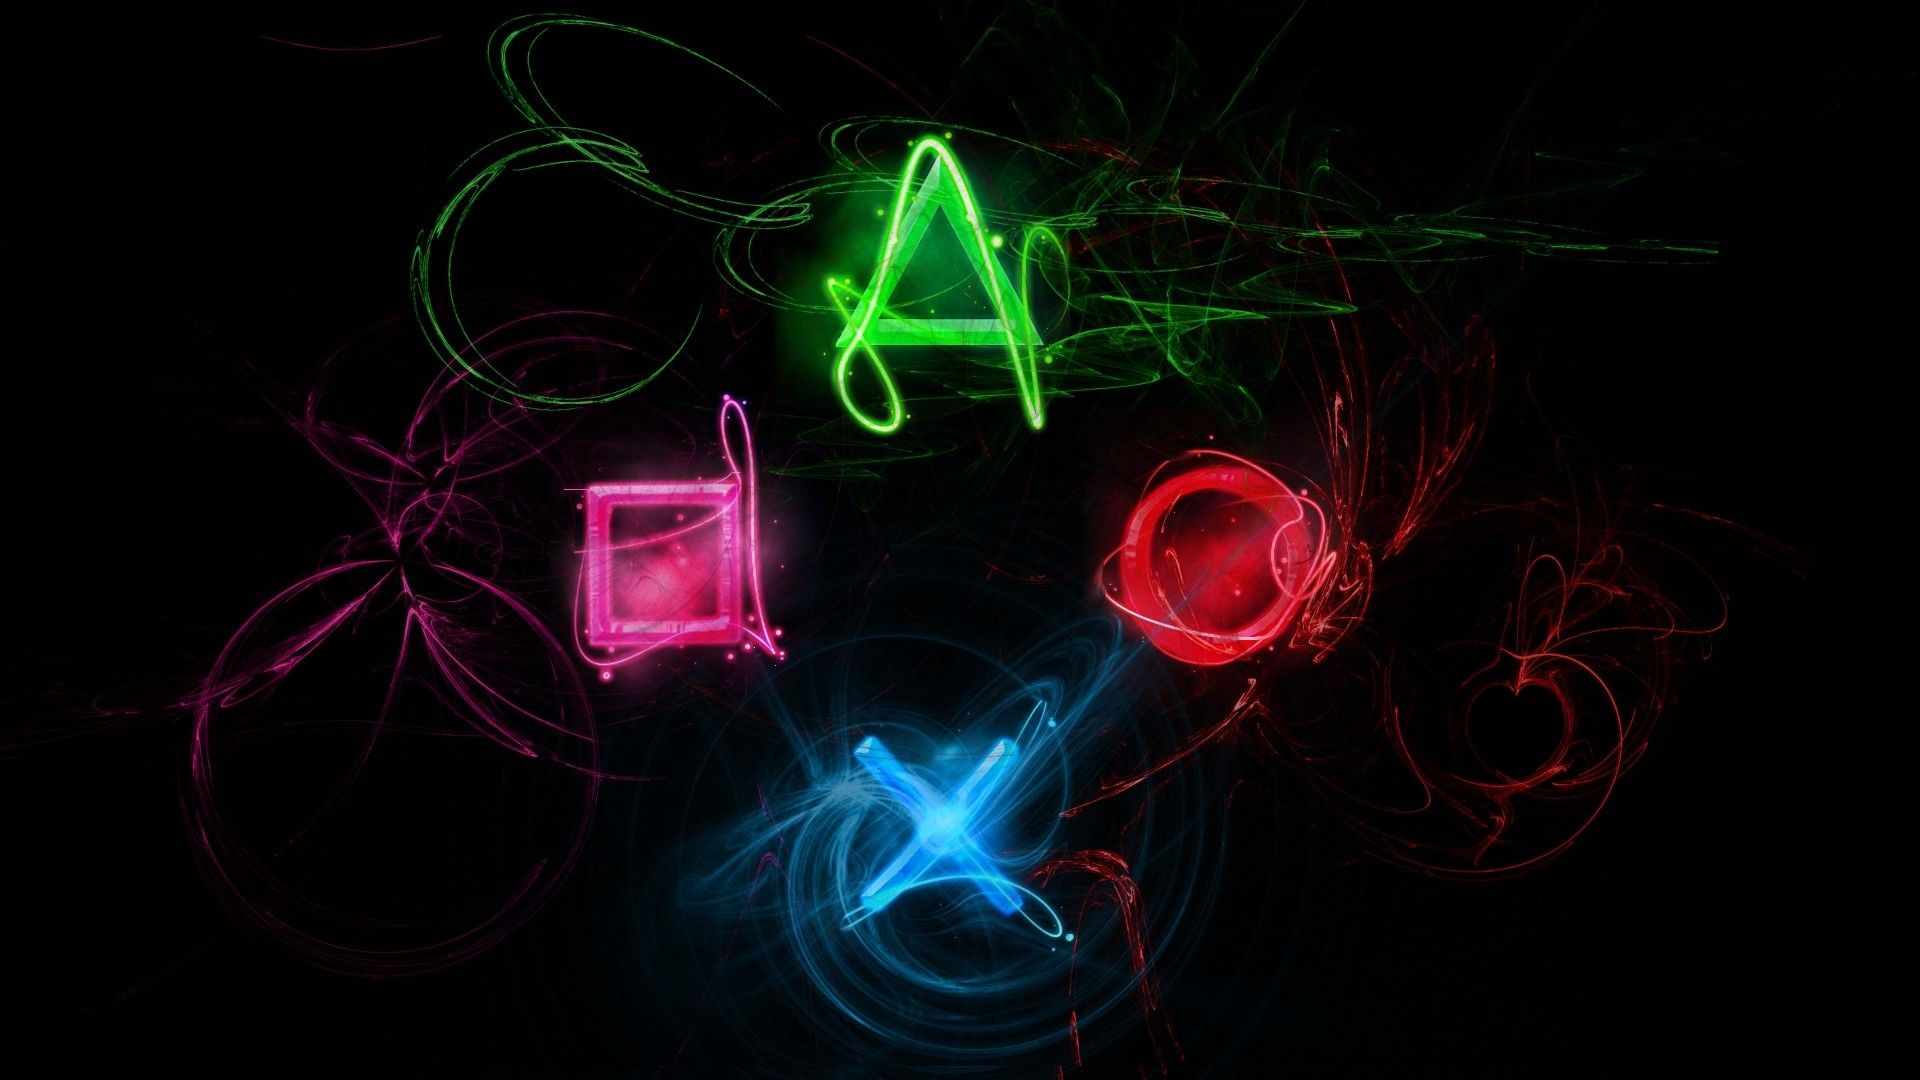 cool neon abstract backgrounds